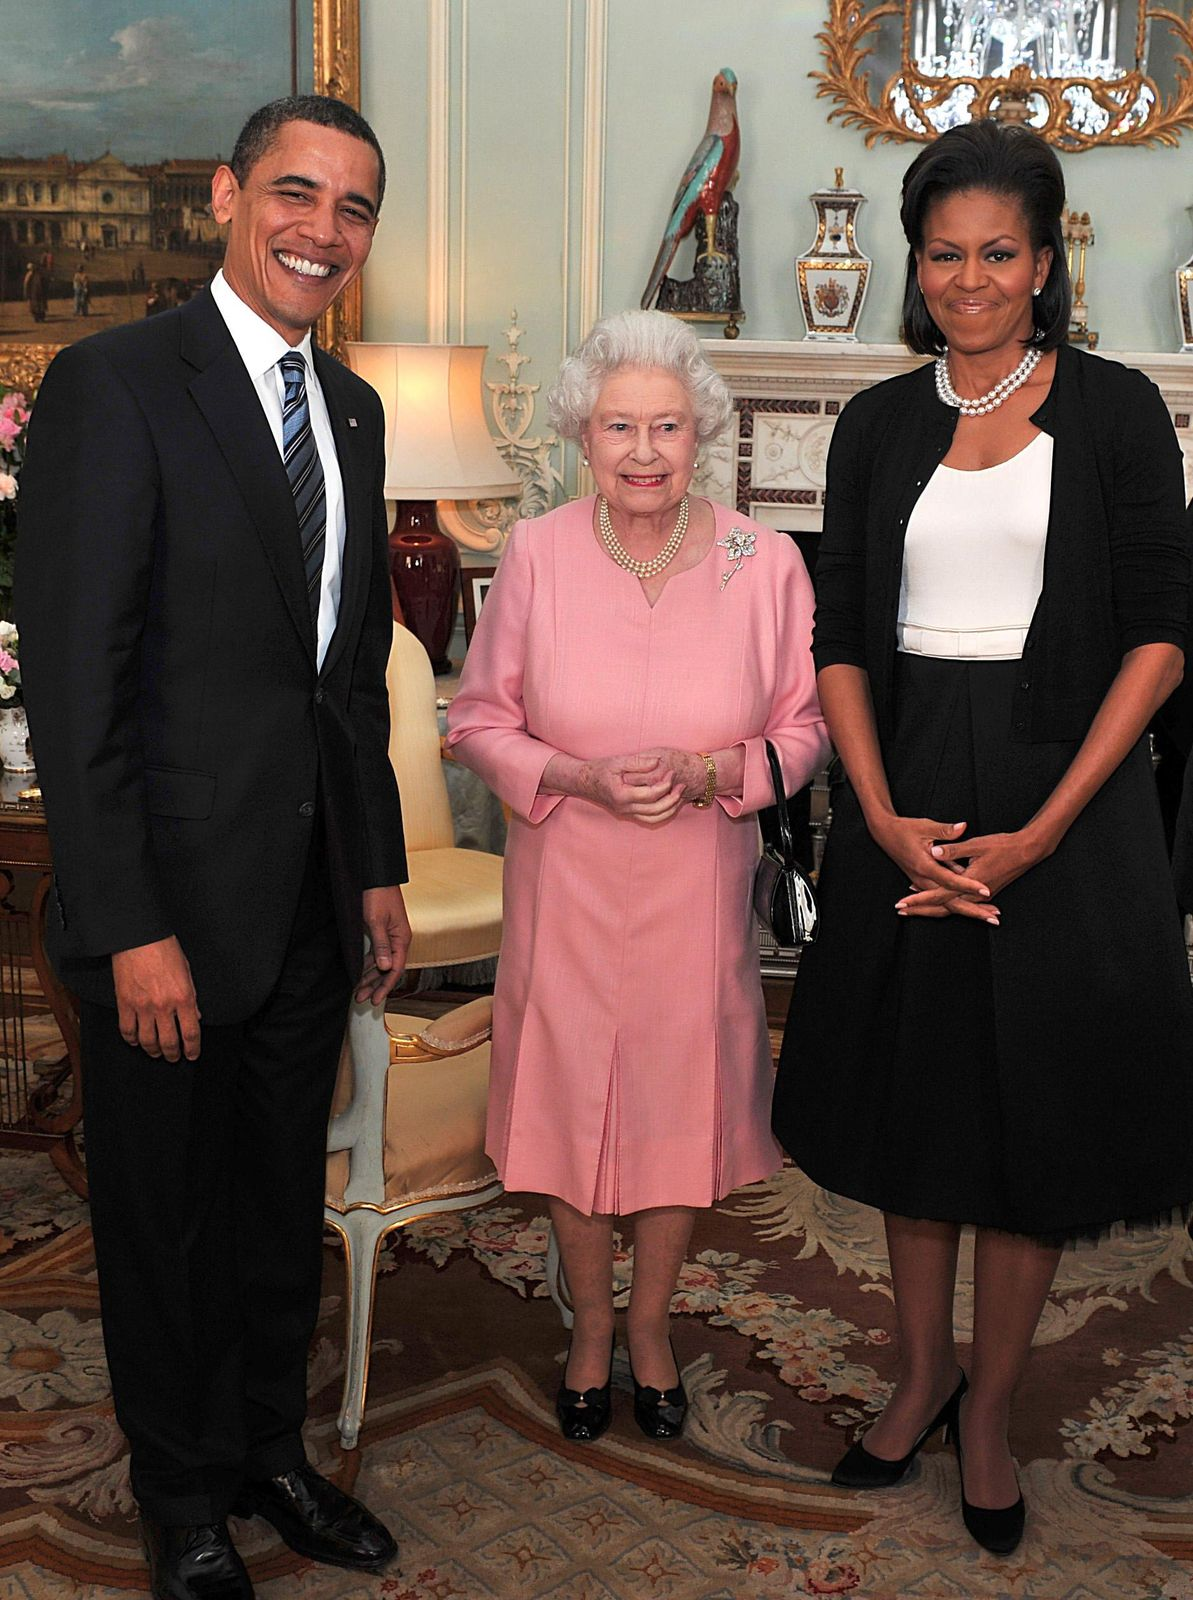 Barack Obama and his wife, Michelle Obama pose with Queen Elizabeth II at a reception at Buckingham Palace on April 1, 2009. | Photo: Getty Images.